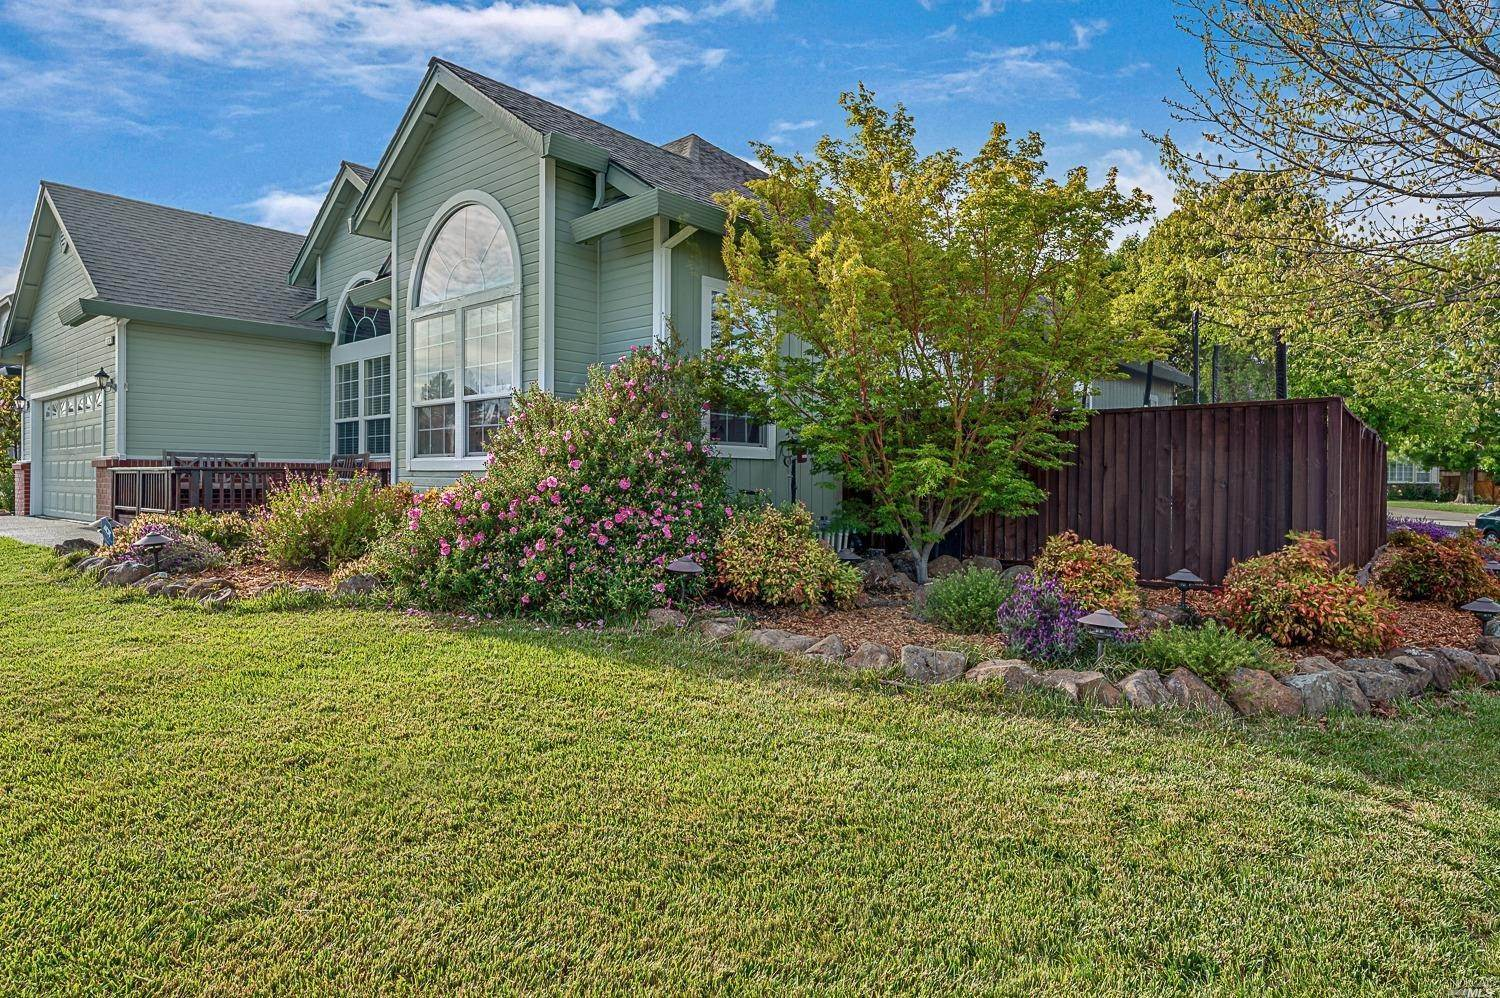 Single Family Homes for Sale at 1232 Heartwood Drive Rohnert Park, California 94928 United States